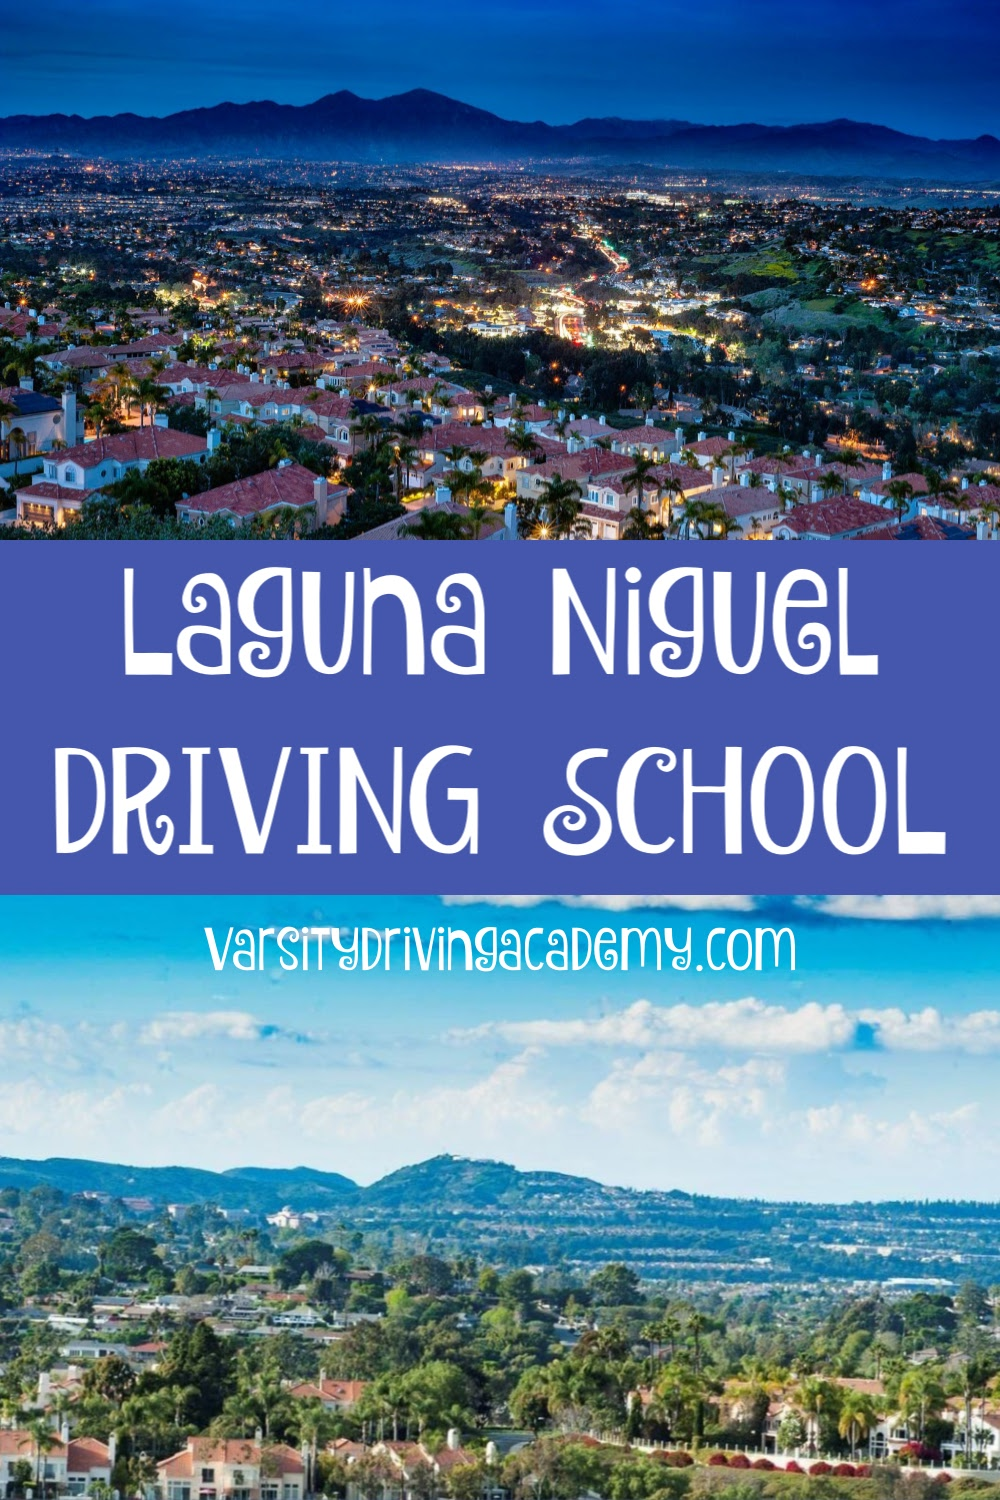 Varsity Driving Academy is the best Laguna Niguel driving school that offers the best drivers ed in Laguna Niguel for teens and adults who want to learn how to drive in California.